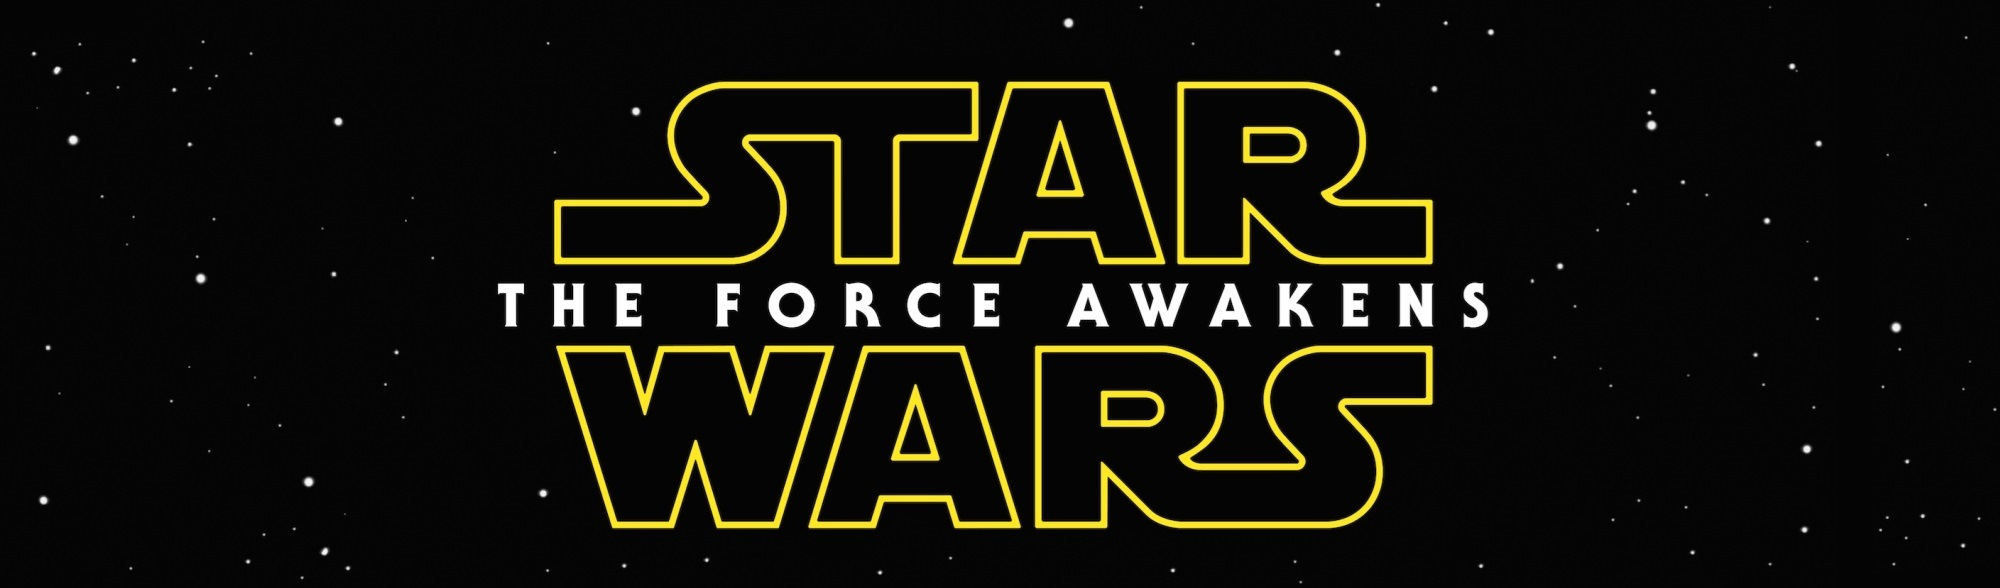 Star_Wars_The_Force_Awakens (cropped 2).jpg